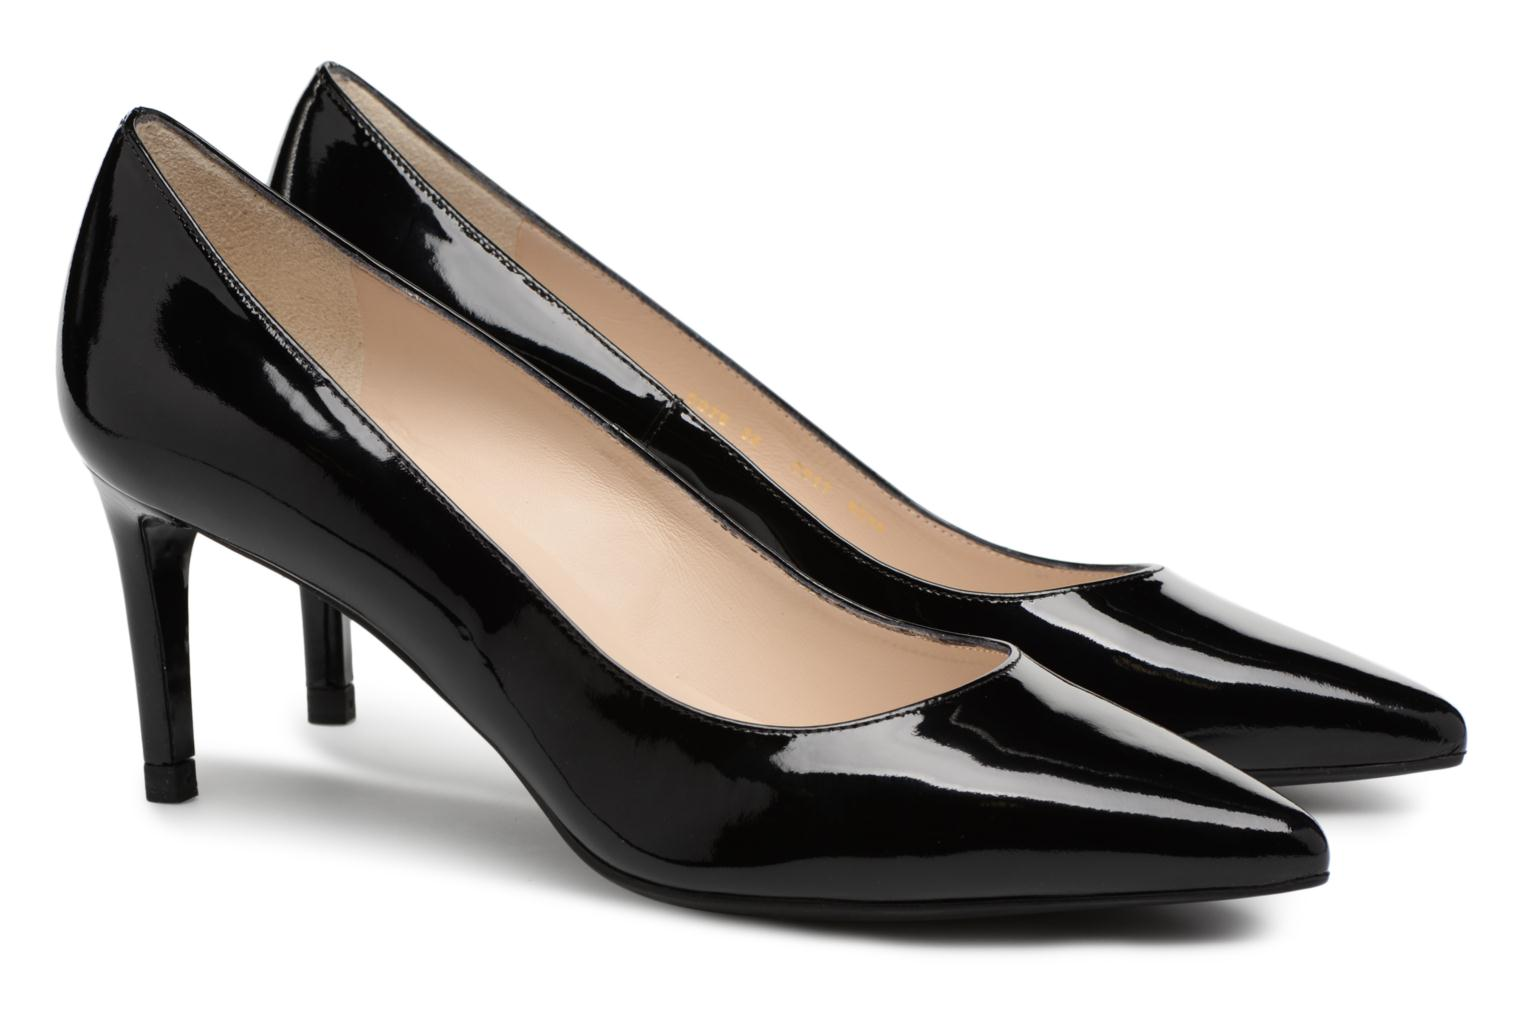 Marques Chaussure luxe femme L.K. Bennett femme Caisie Black Patent